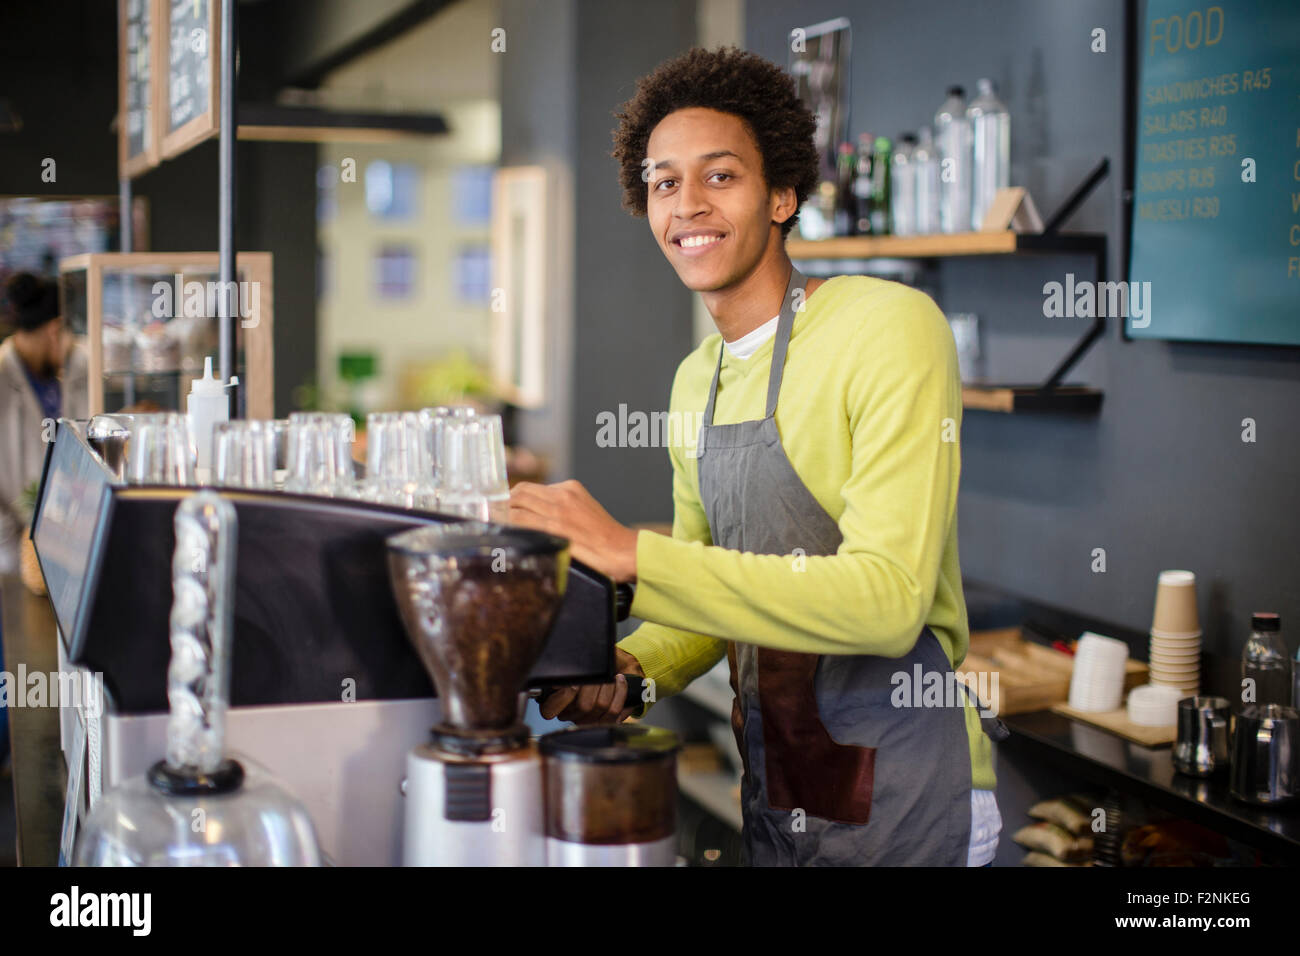 Mixed race barista working in coffee shop Stock Photo